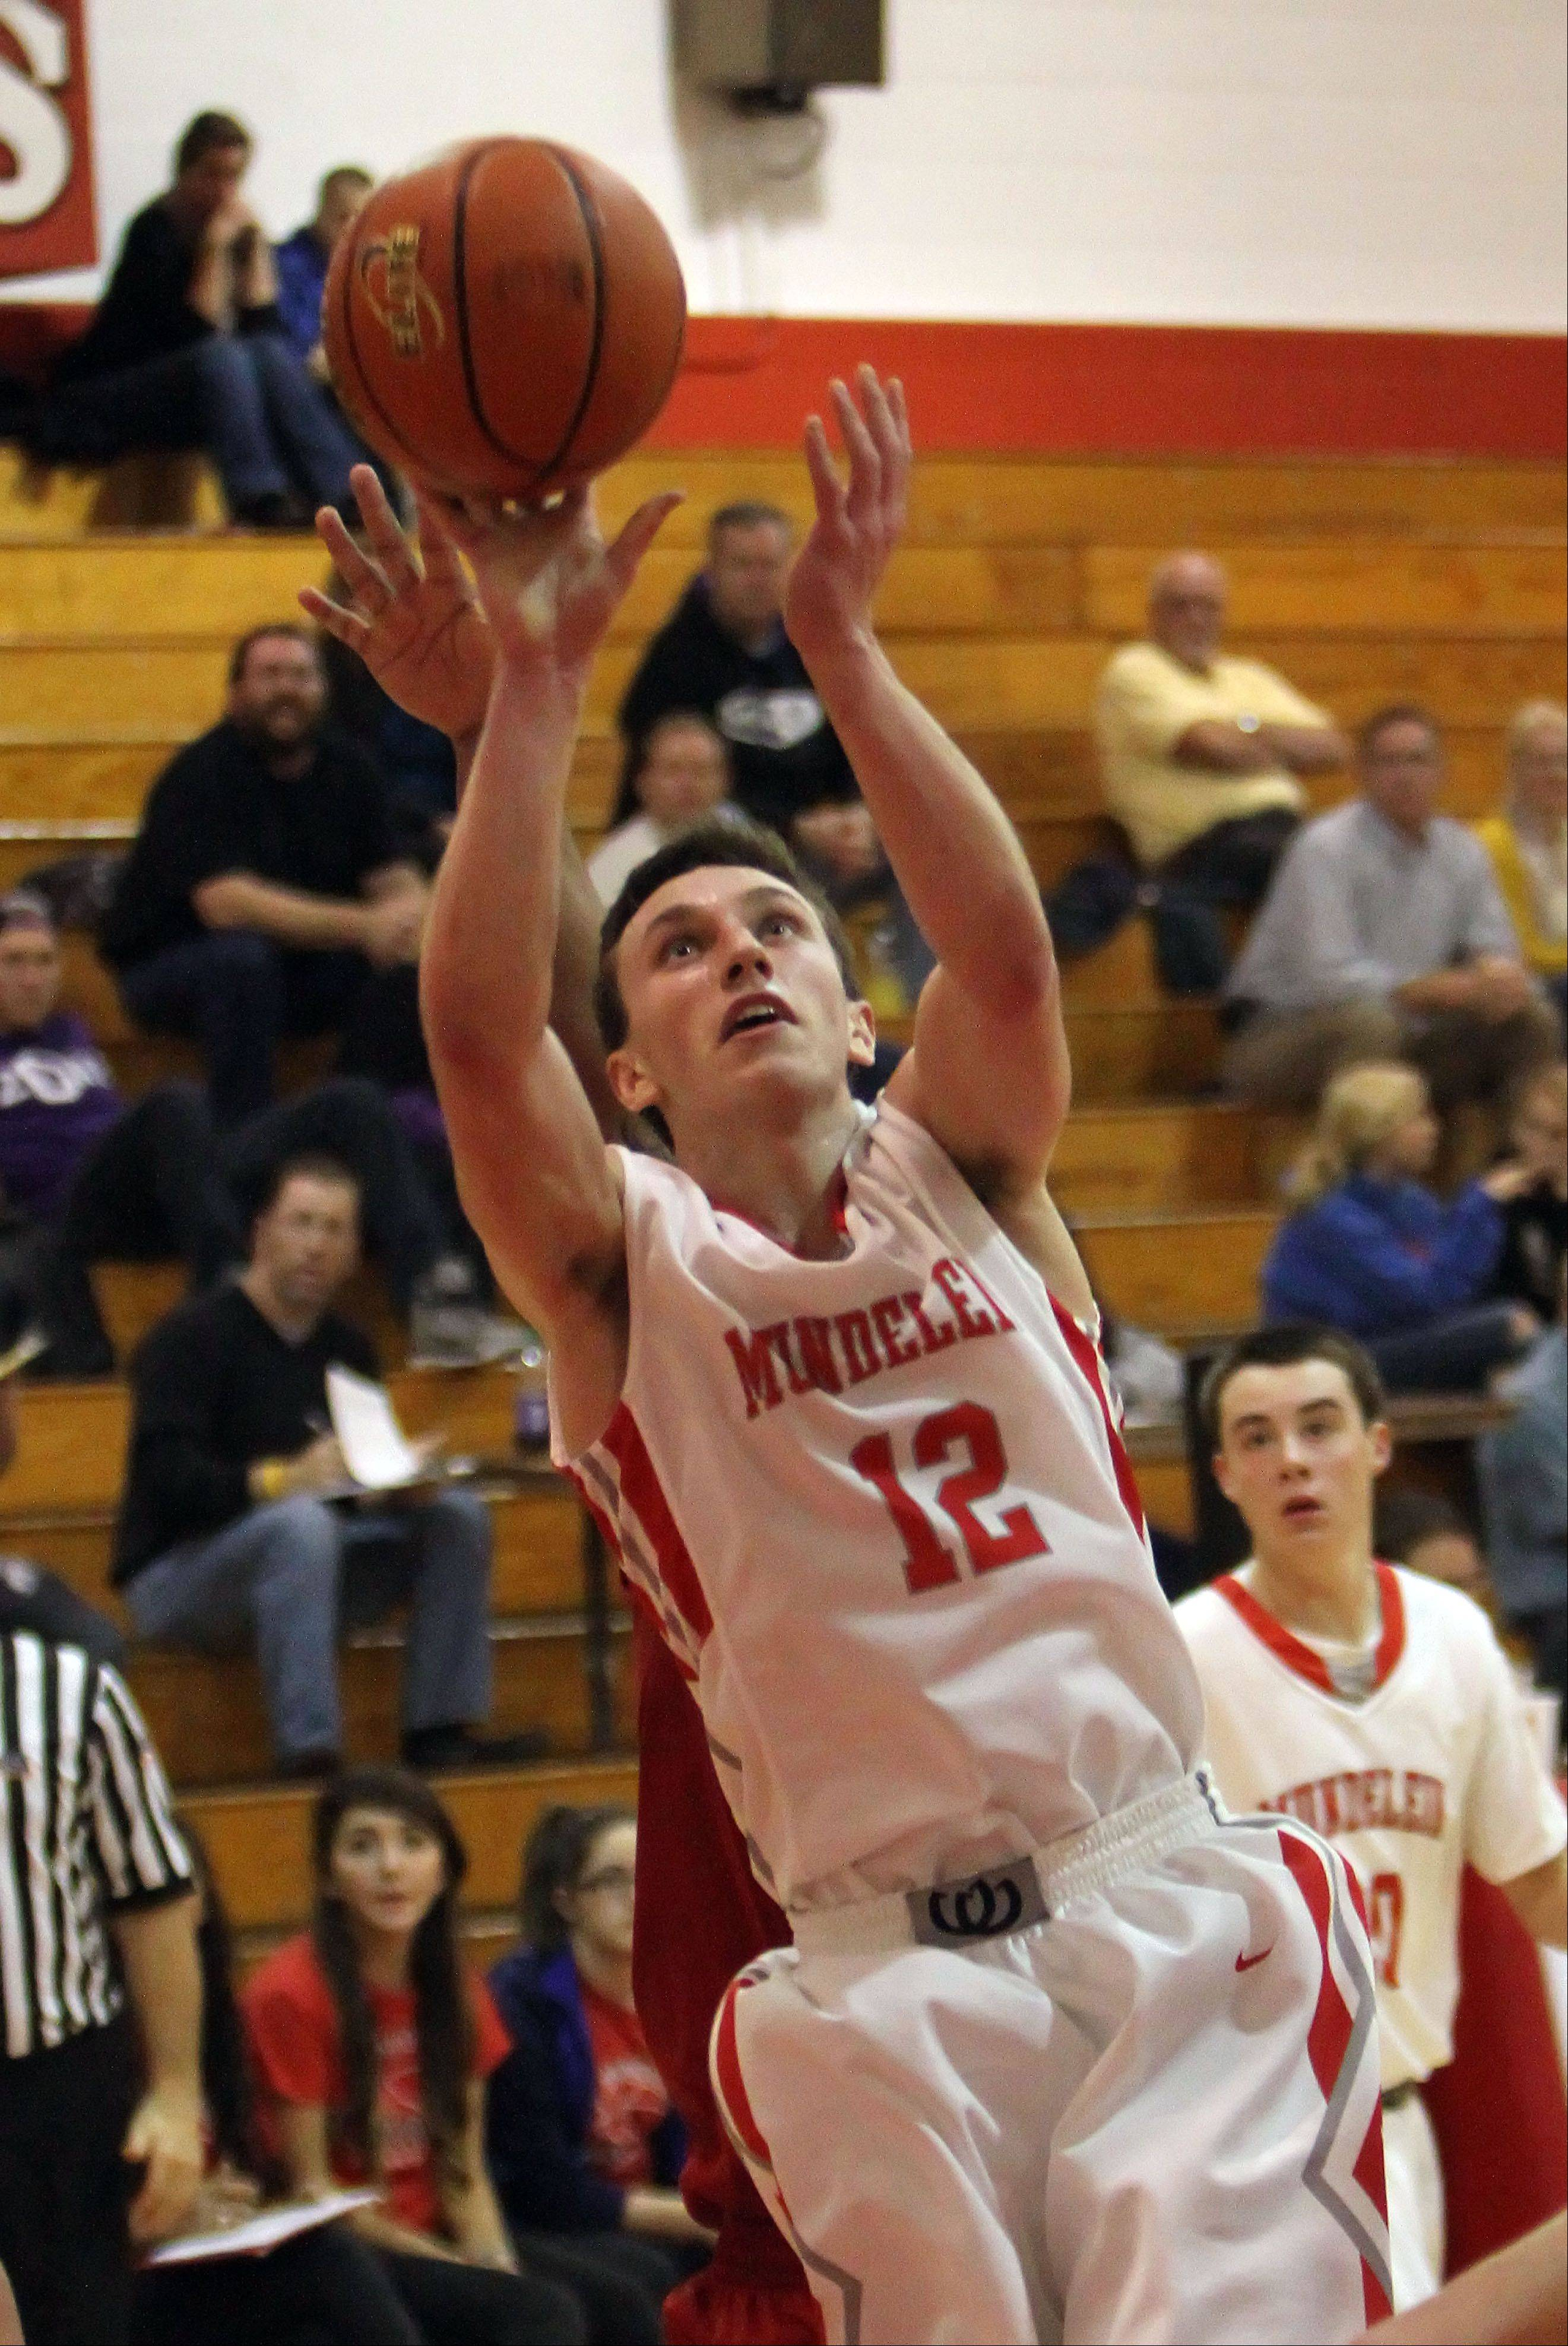 Mundelein's Quinn Pokora drives to the hoop against Lakes on Tuesday night at Mundelein.